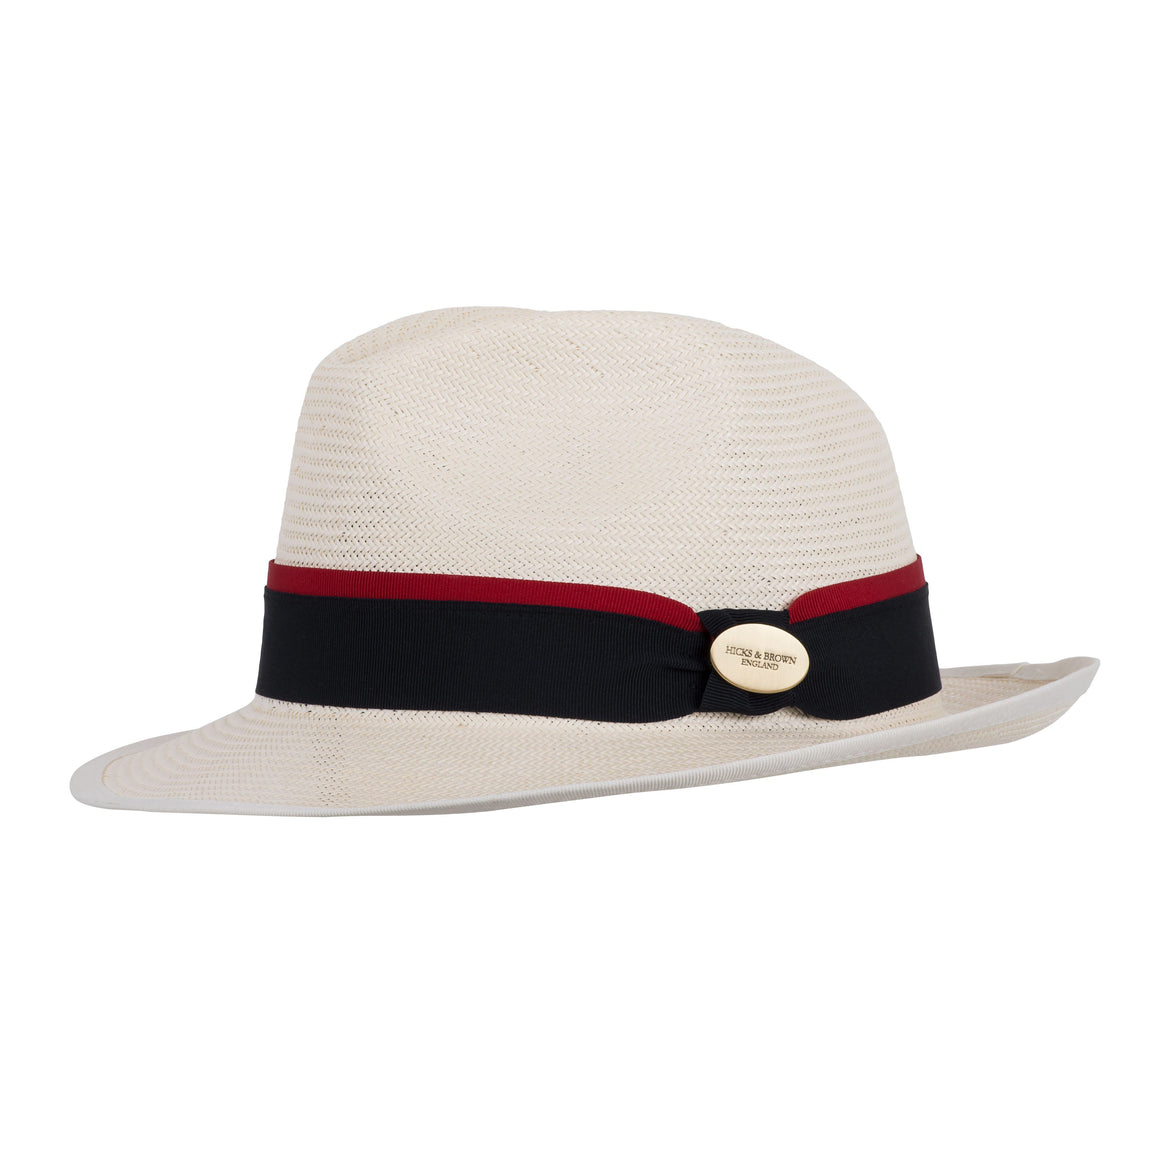 Hicks and Brown The Holkham Panama (Navy with Red ribbon)